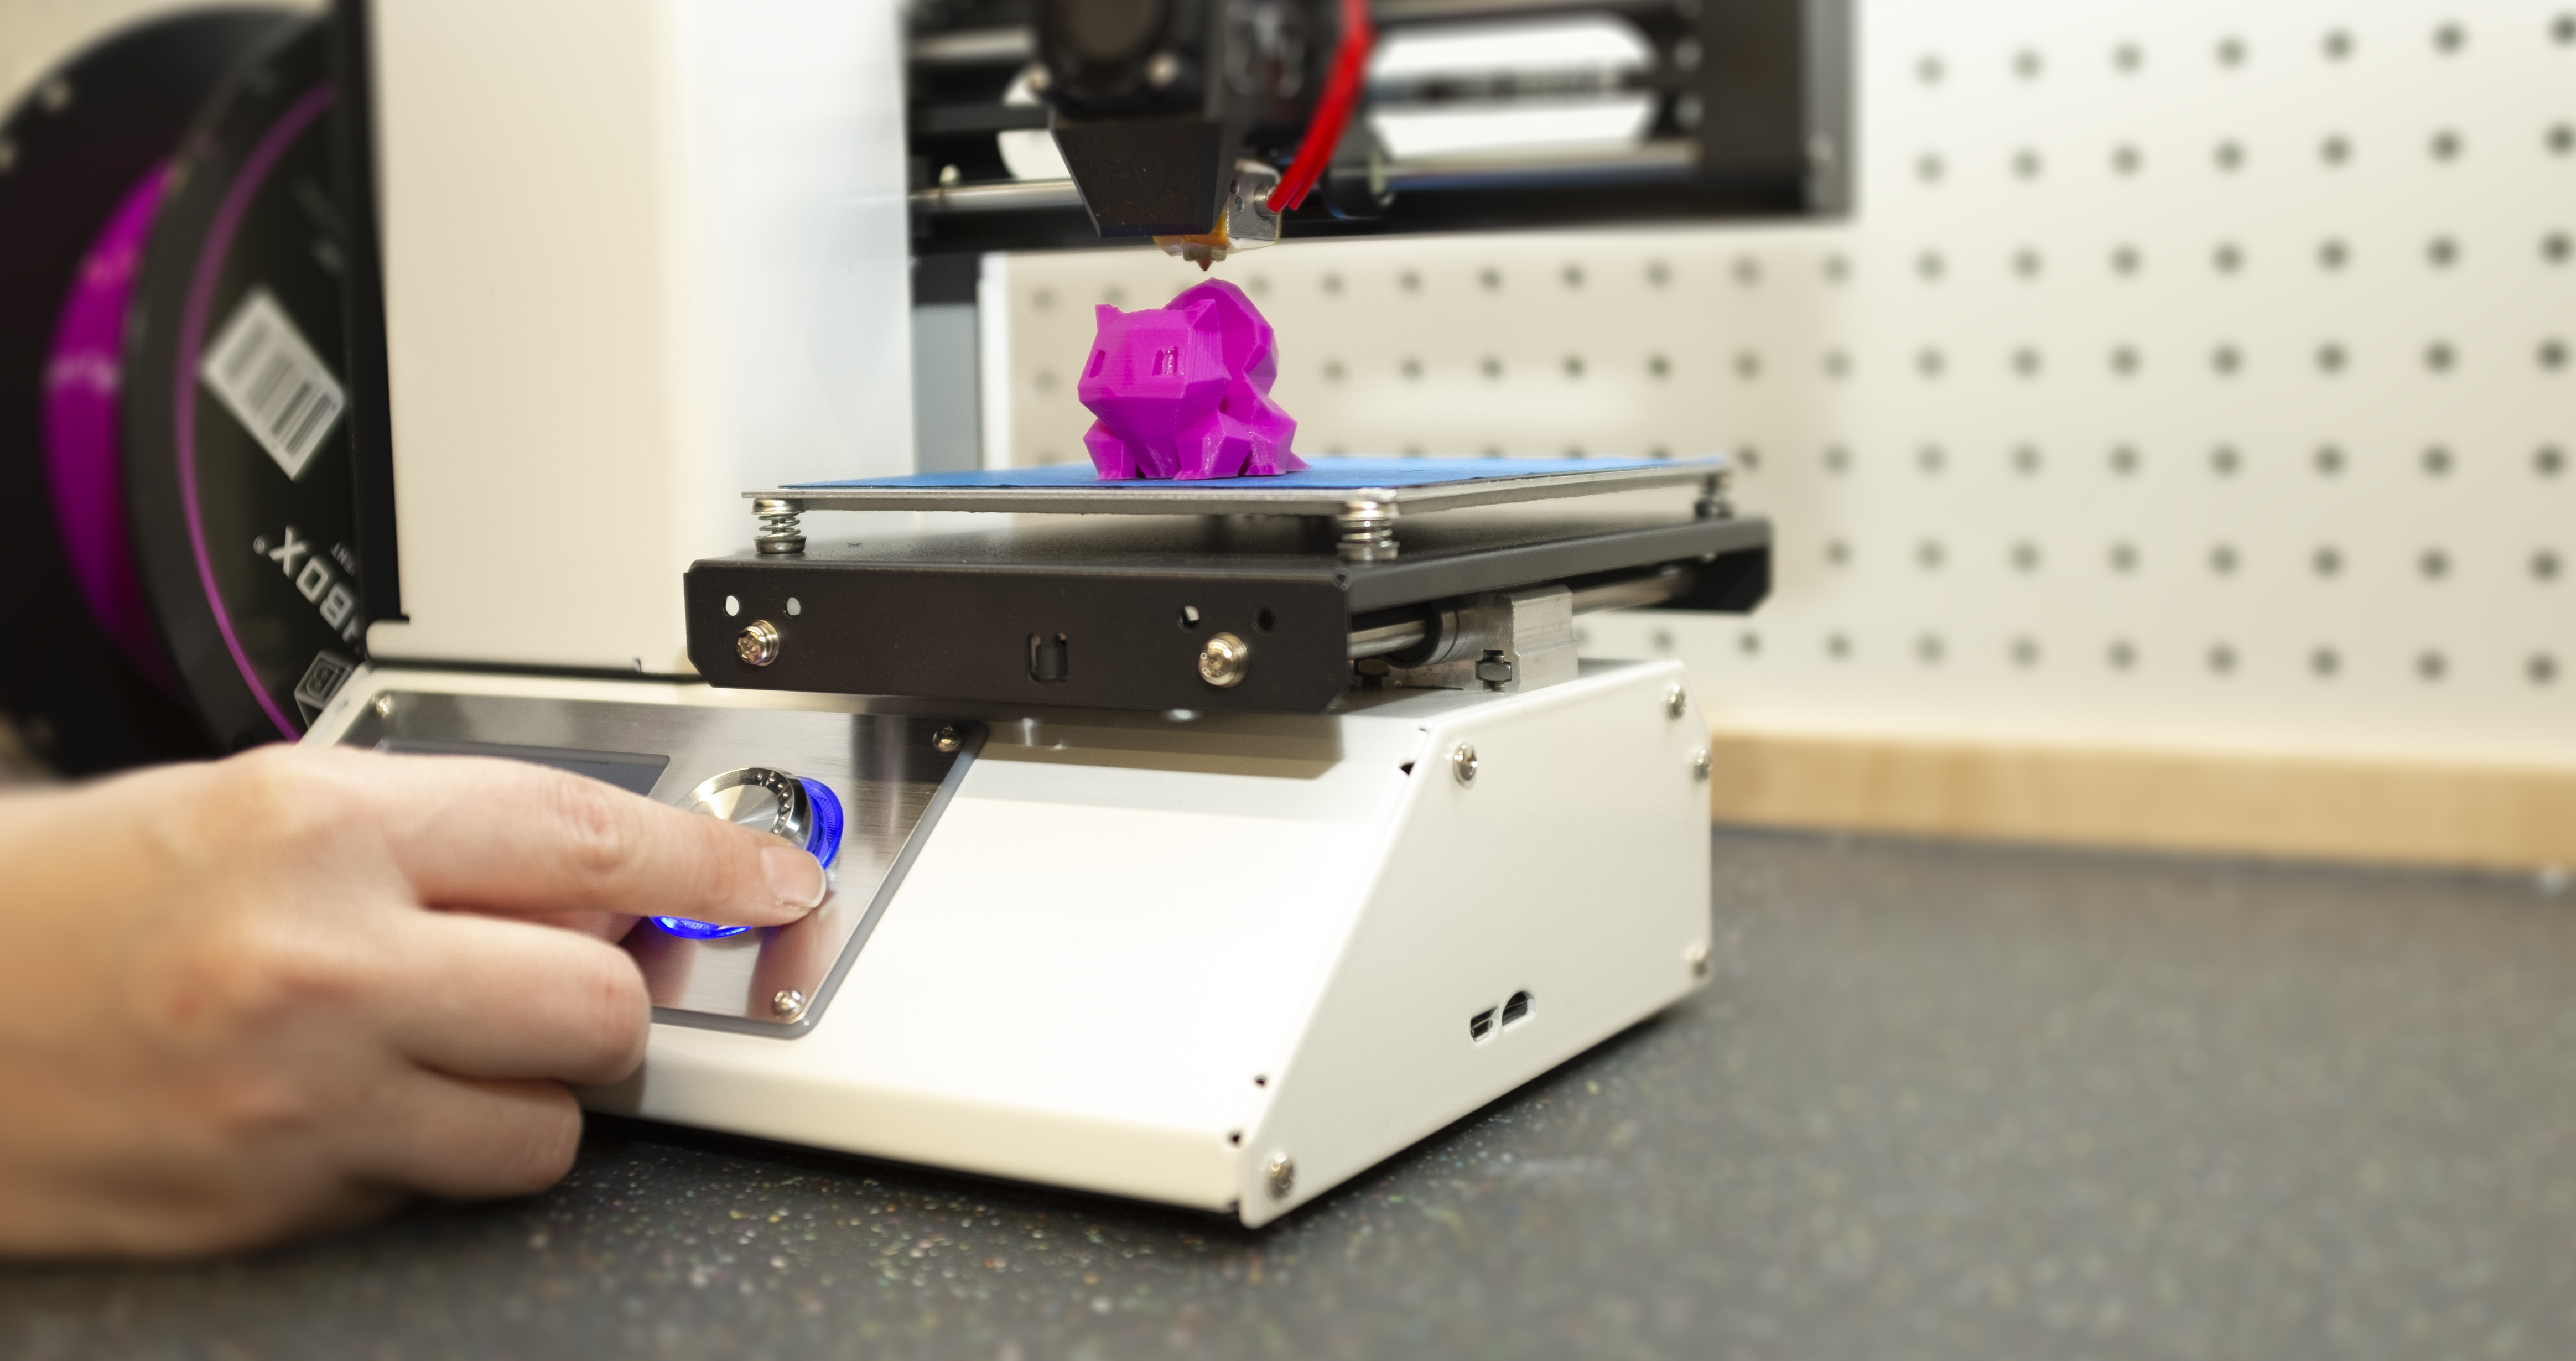 Introduction to 3D Design and 3D Printing